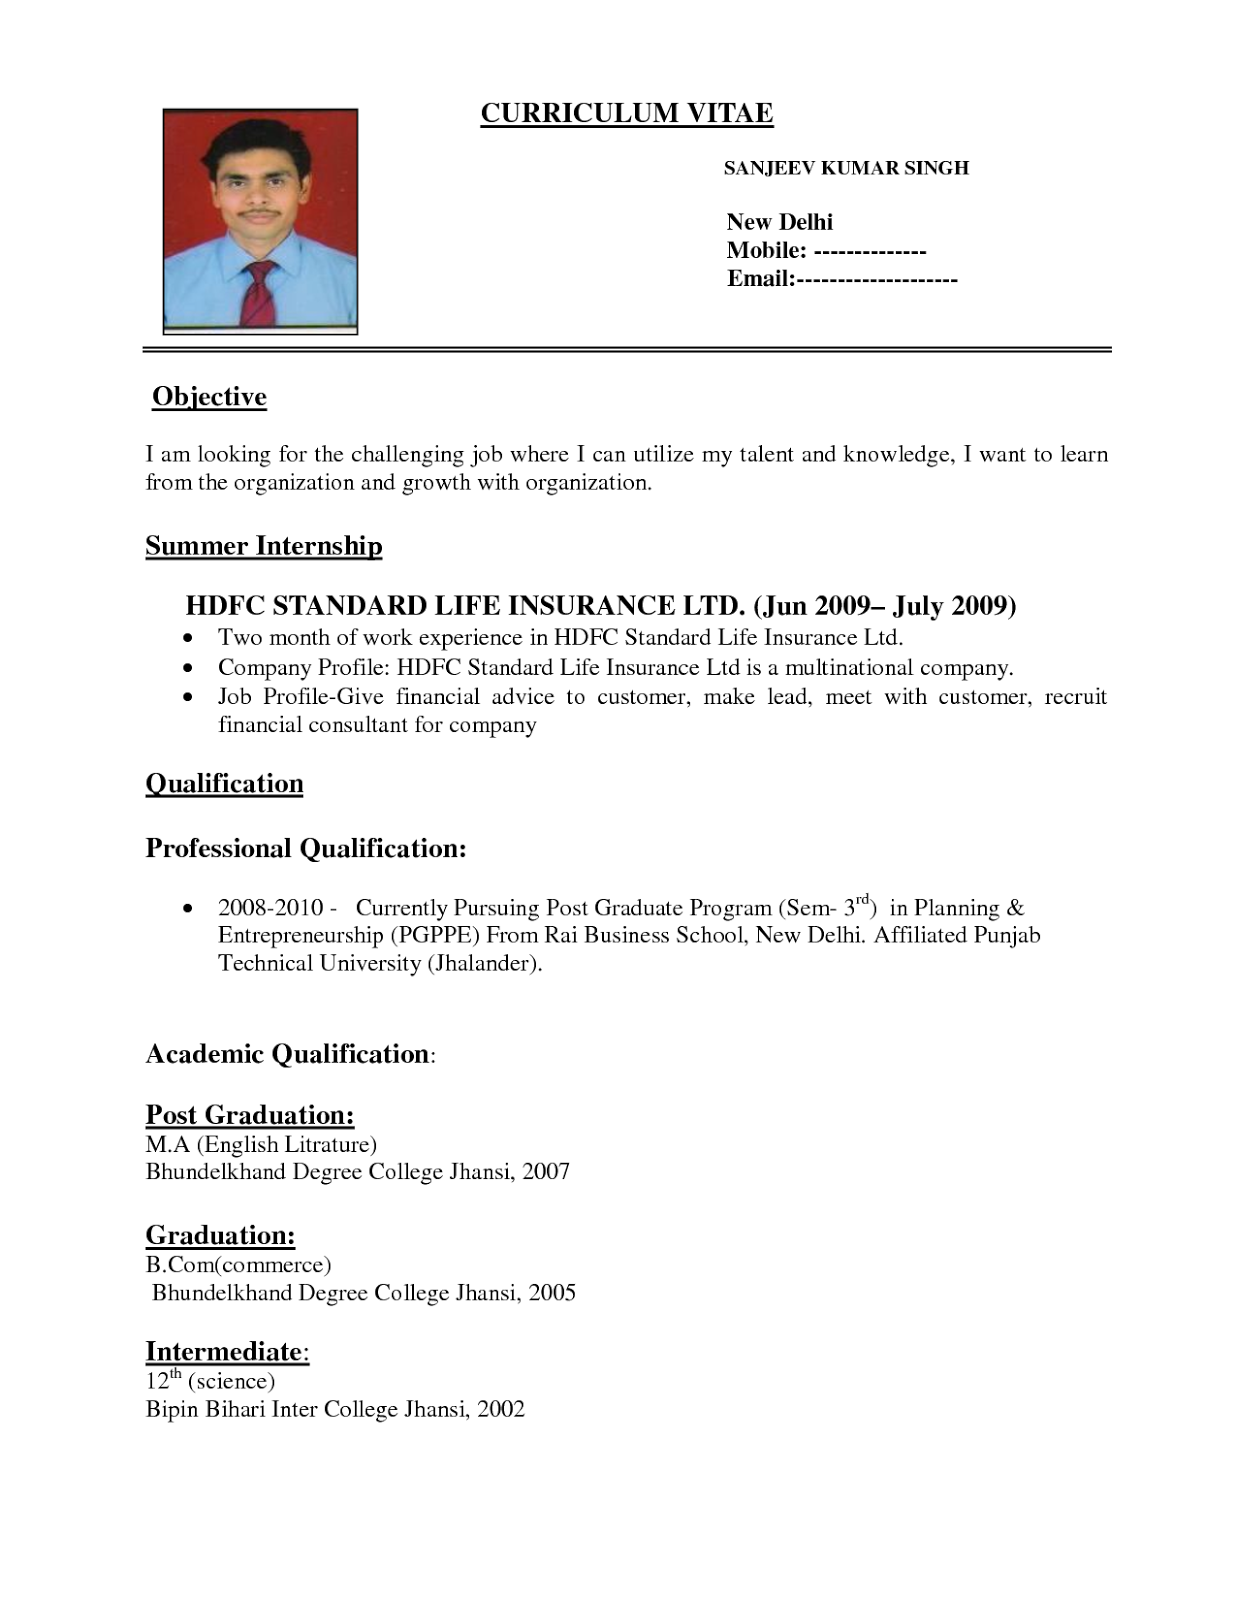 Download Resume Format Amp Write The Best Focusing Formal Training